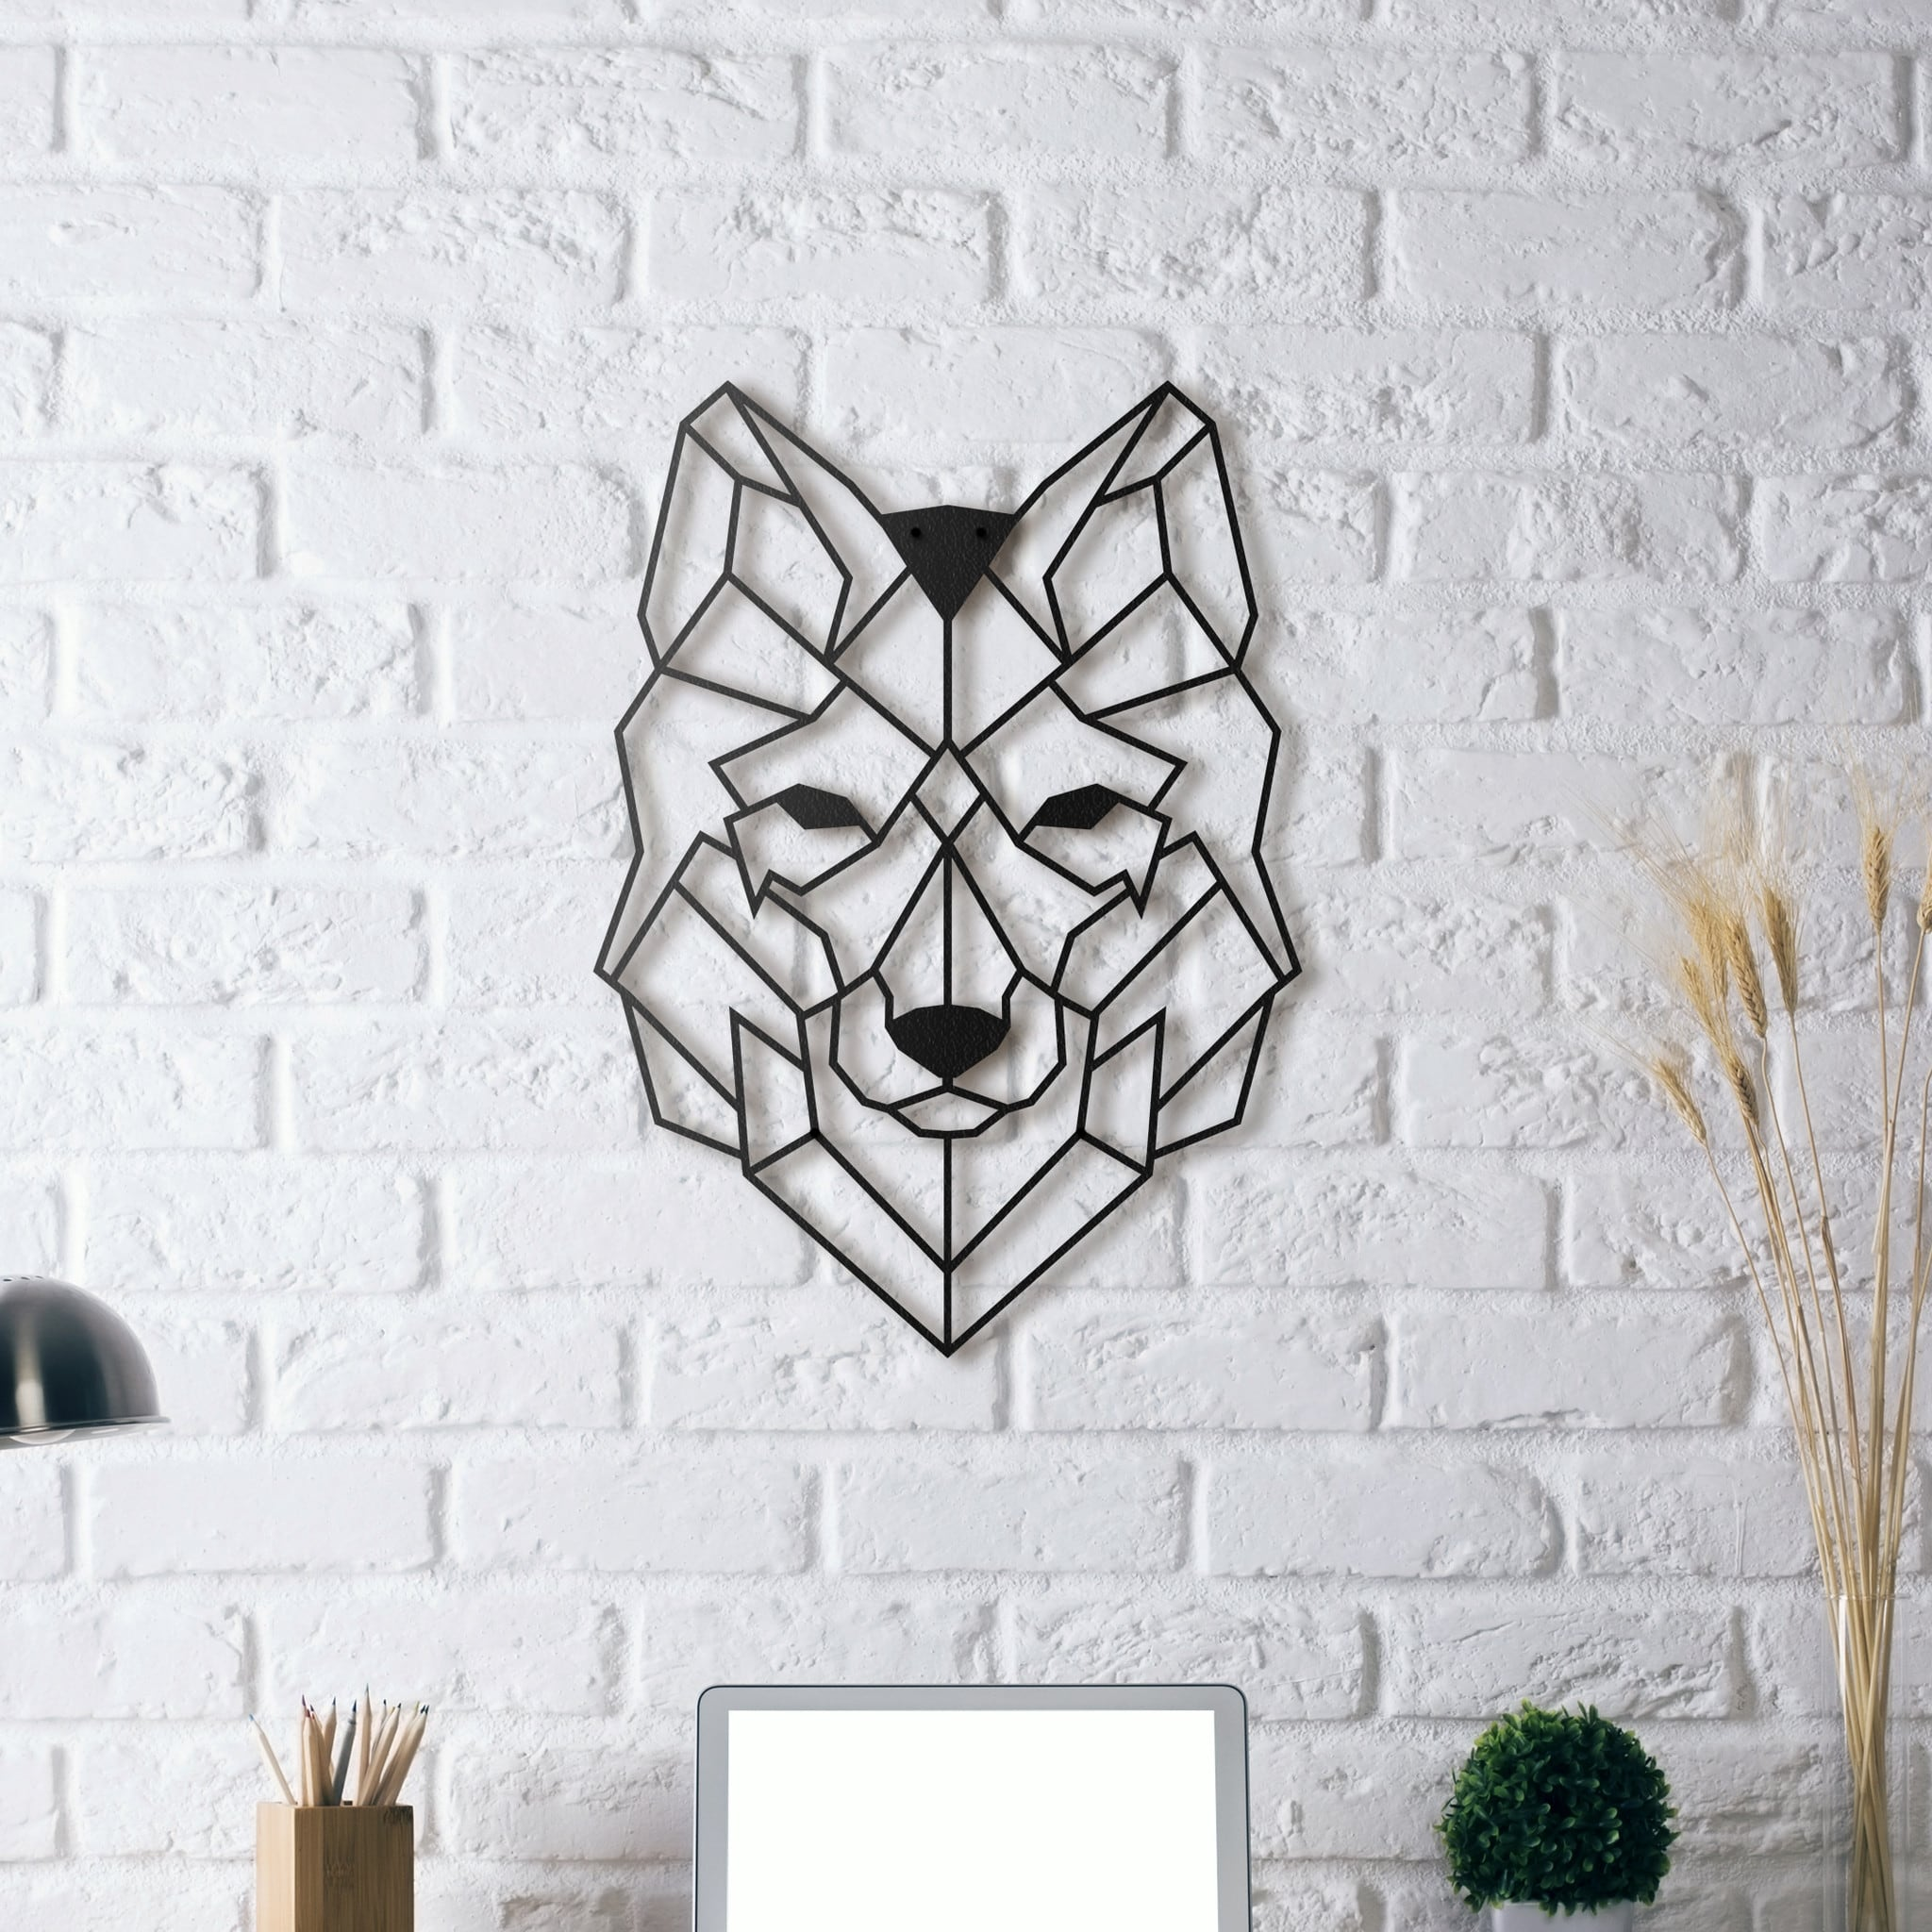 Metal wall decoration of a wolf to have a design touch in your interior